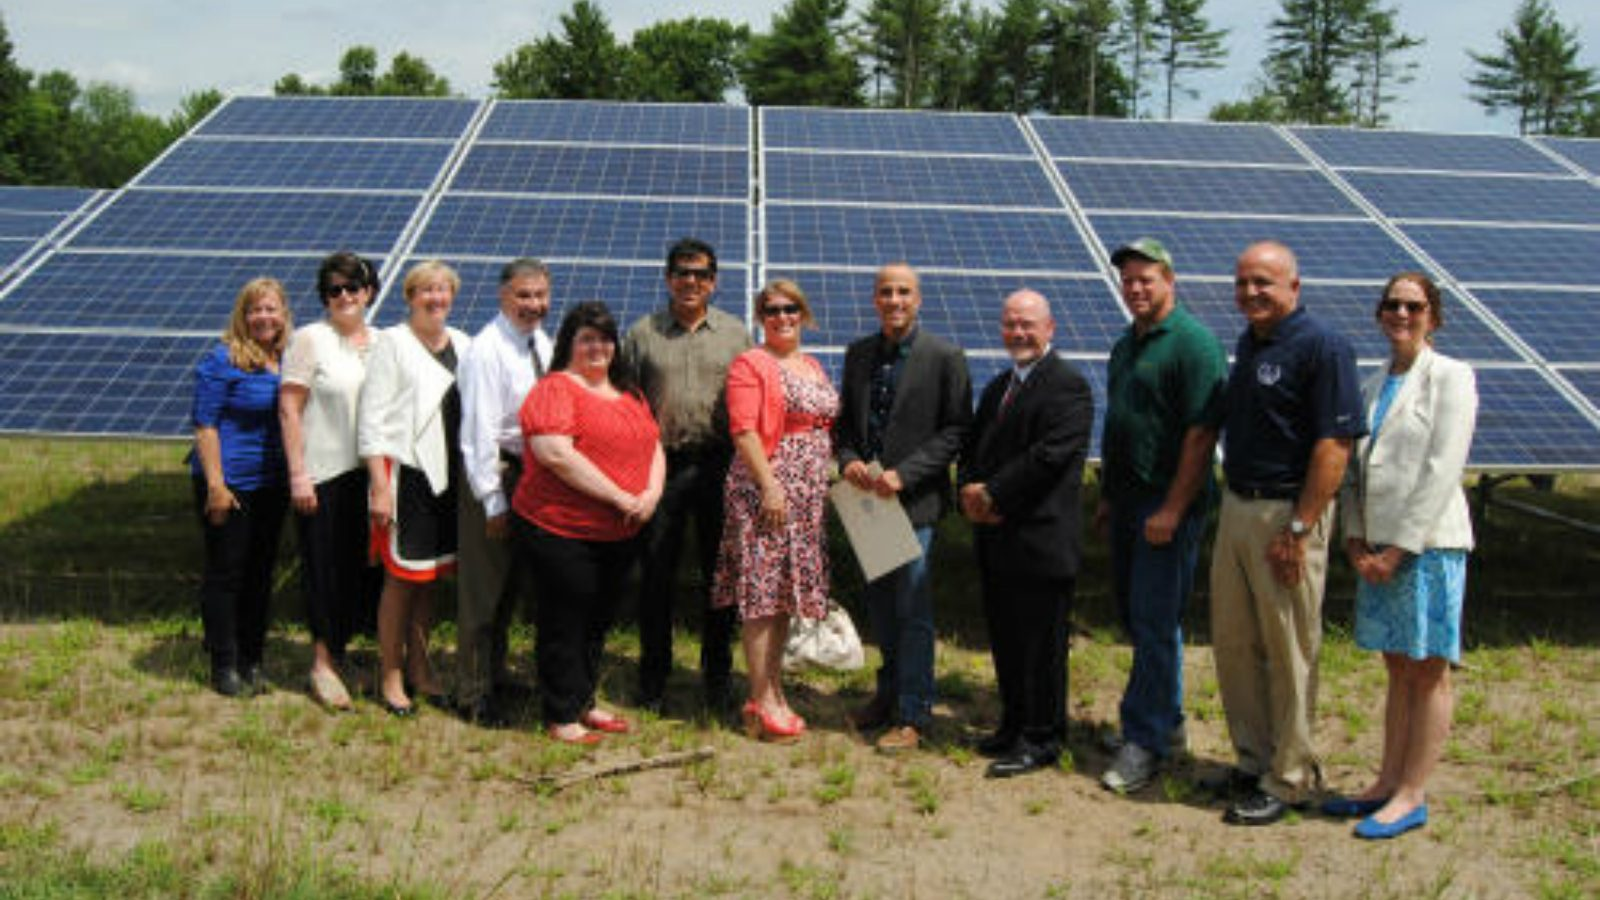 Pepperell Solar Array Has Lots of Folks Smiling